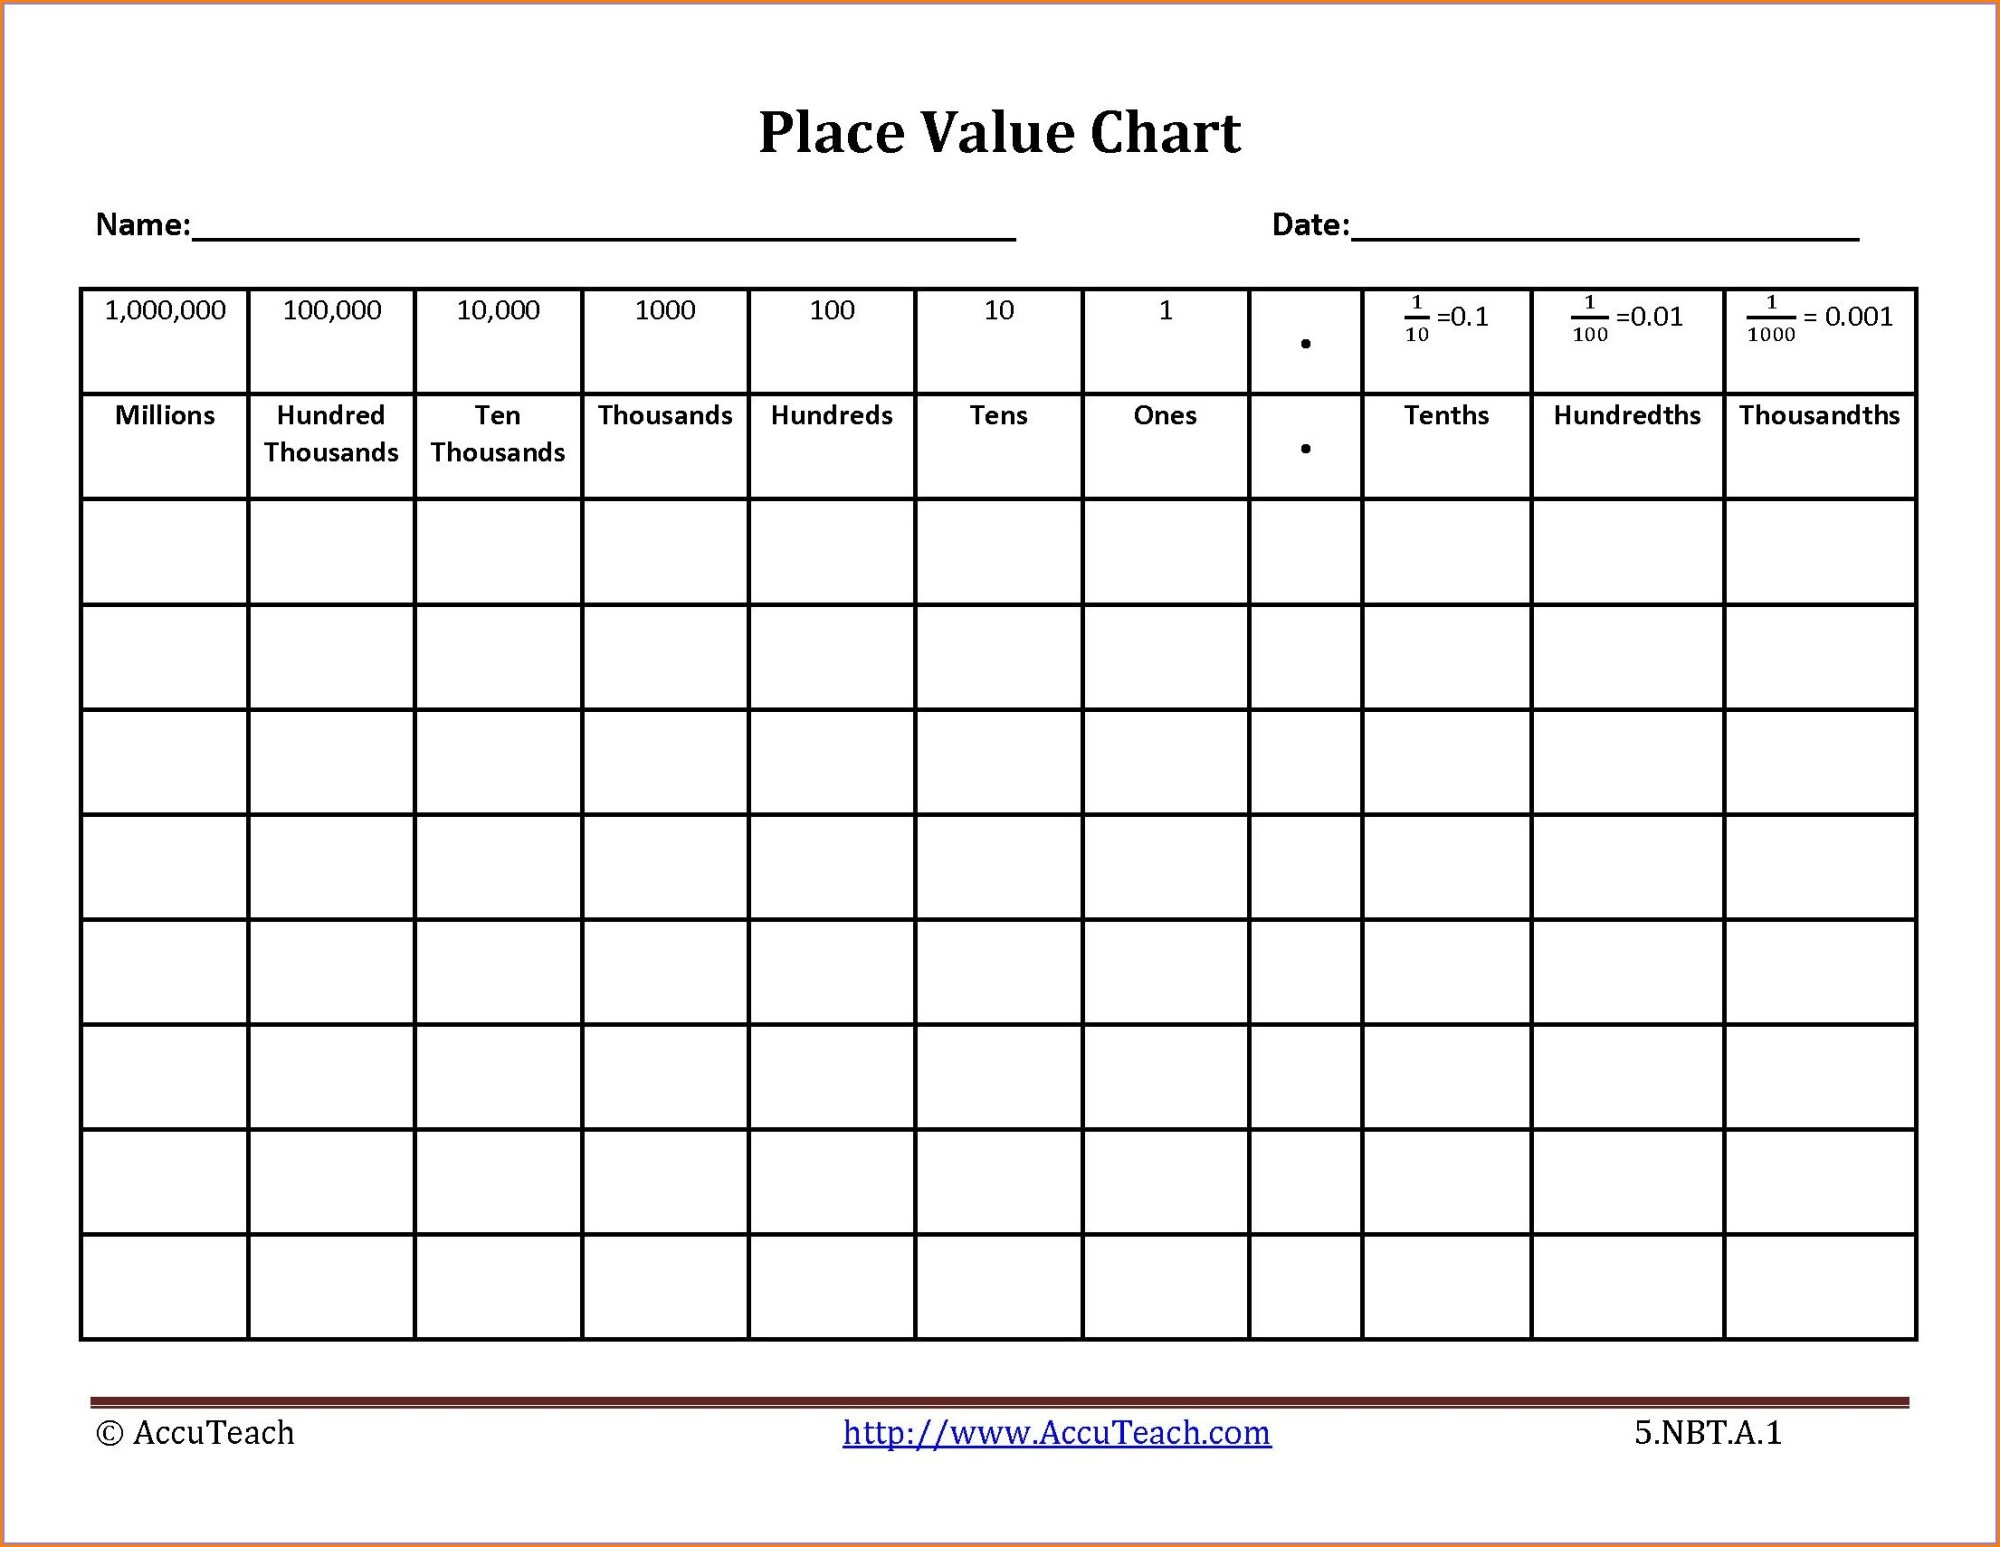 hight resolution of Place Value 3rd Grade Worksheets   Printable Worksheets and Activities for  Teachers